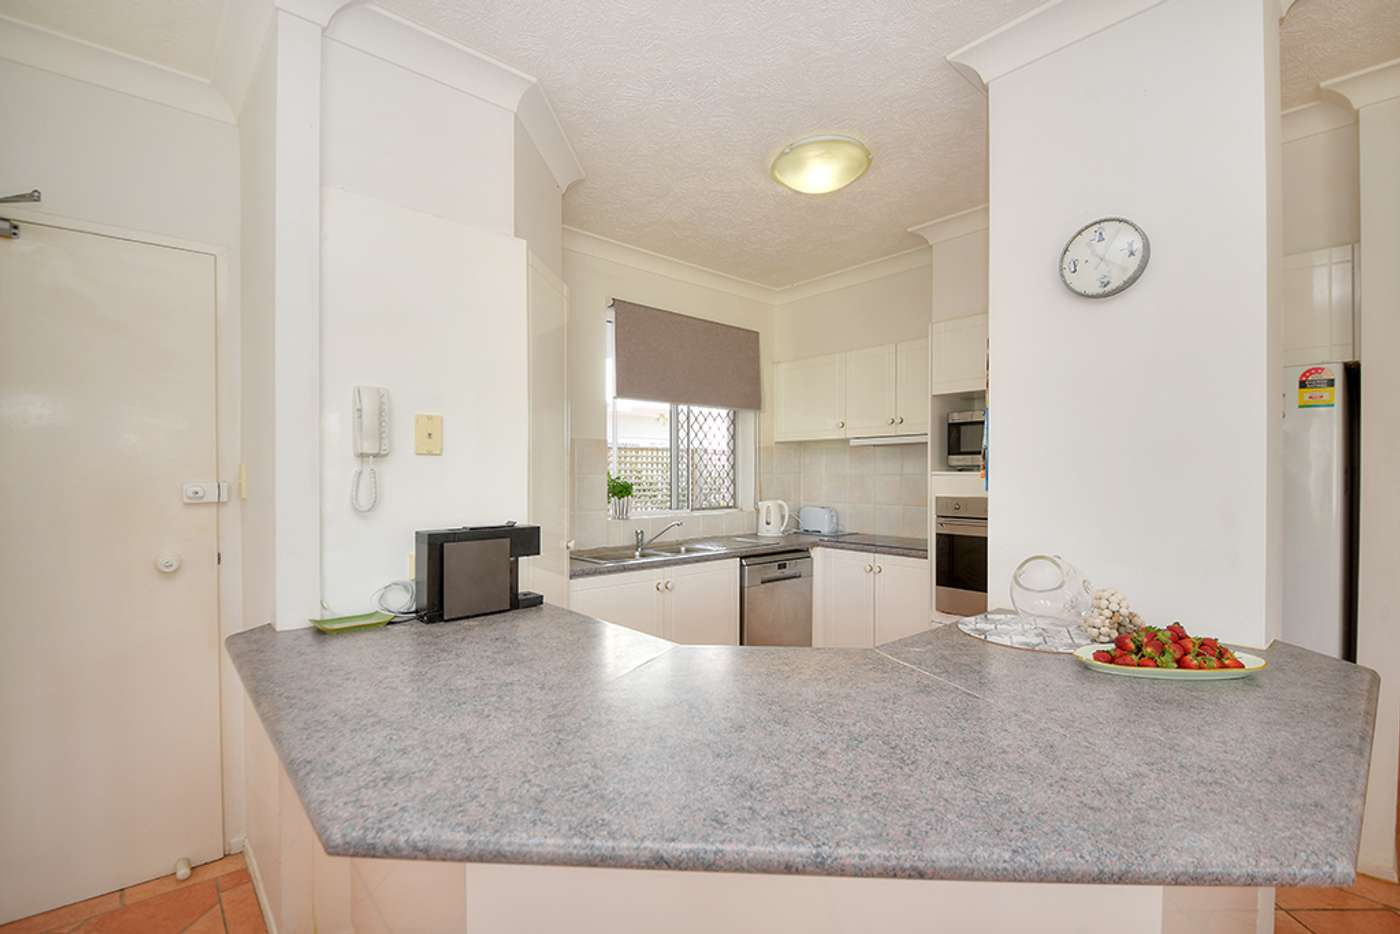 Fifth view of Homely apartment listing, 1/12-14 Venice Street, Mermaid Beach QLD 4218